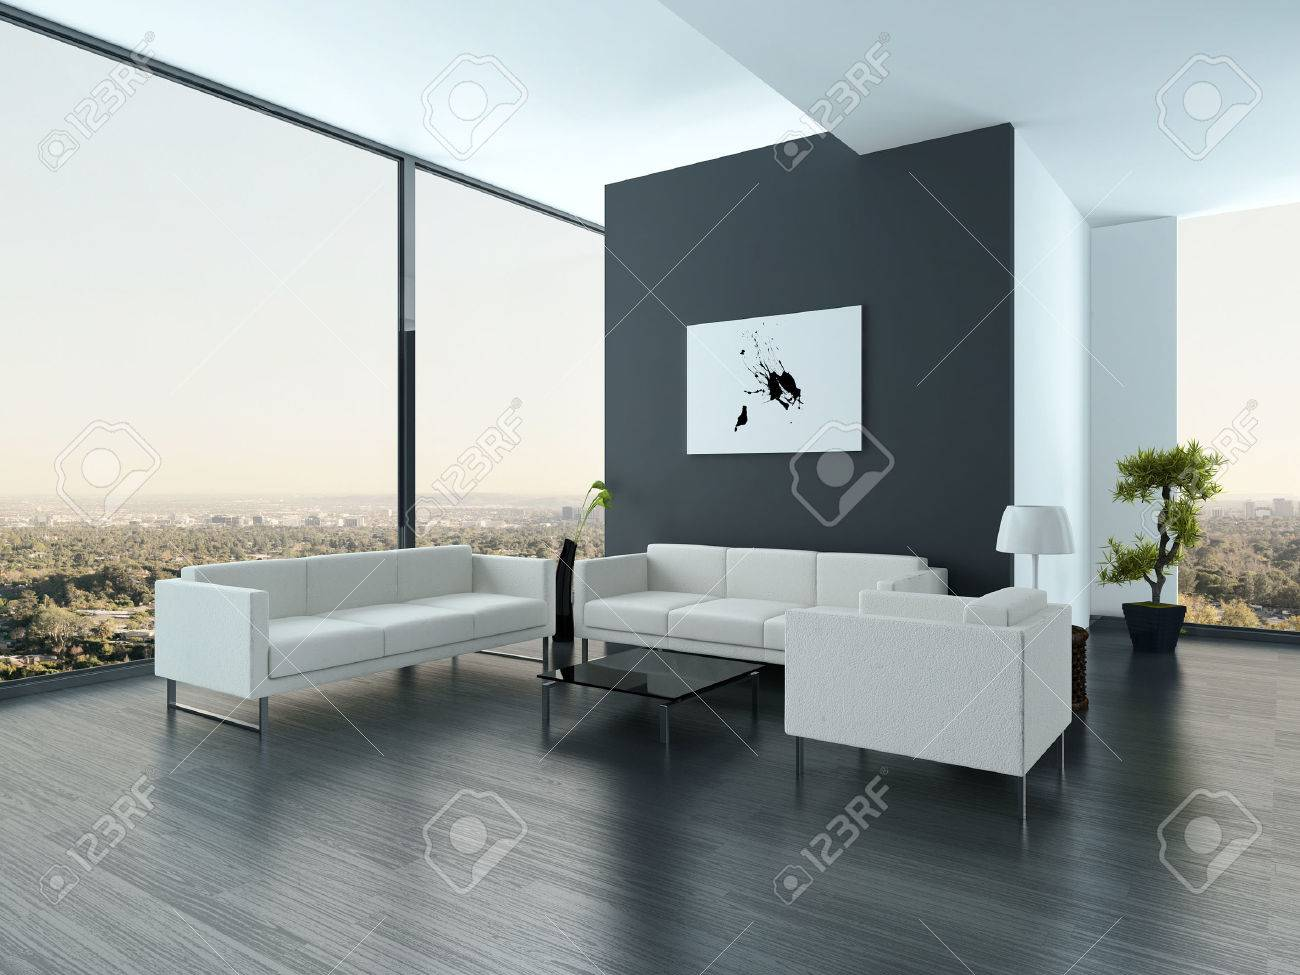 nice interior design photos. Nice white and gray style living room interior with huge windows Stock  Photo 29023163 White And Gray Style Living Room Interior With Huge Windows